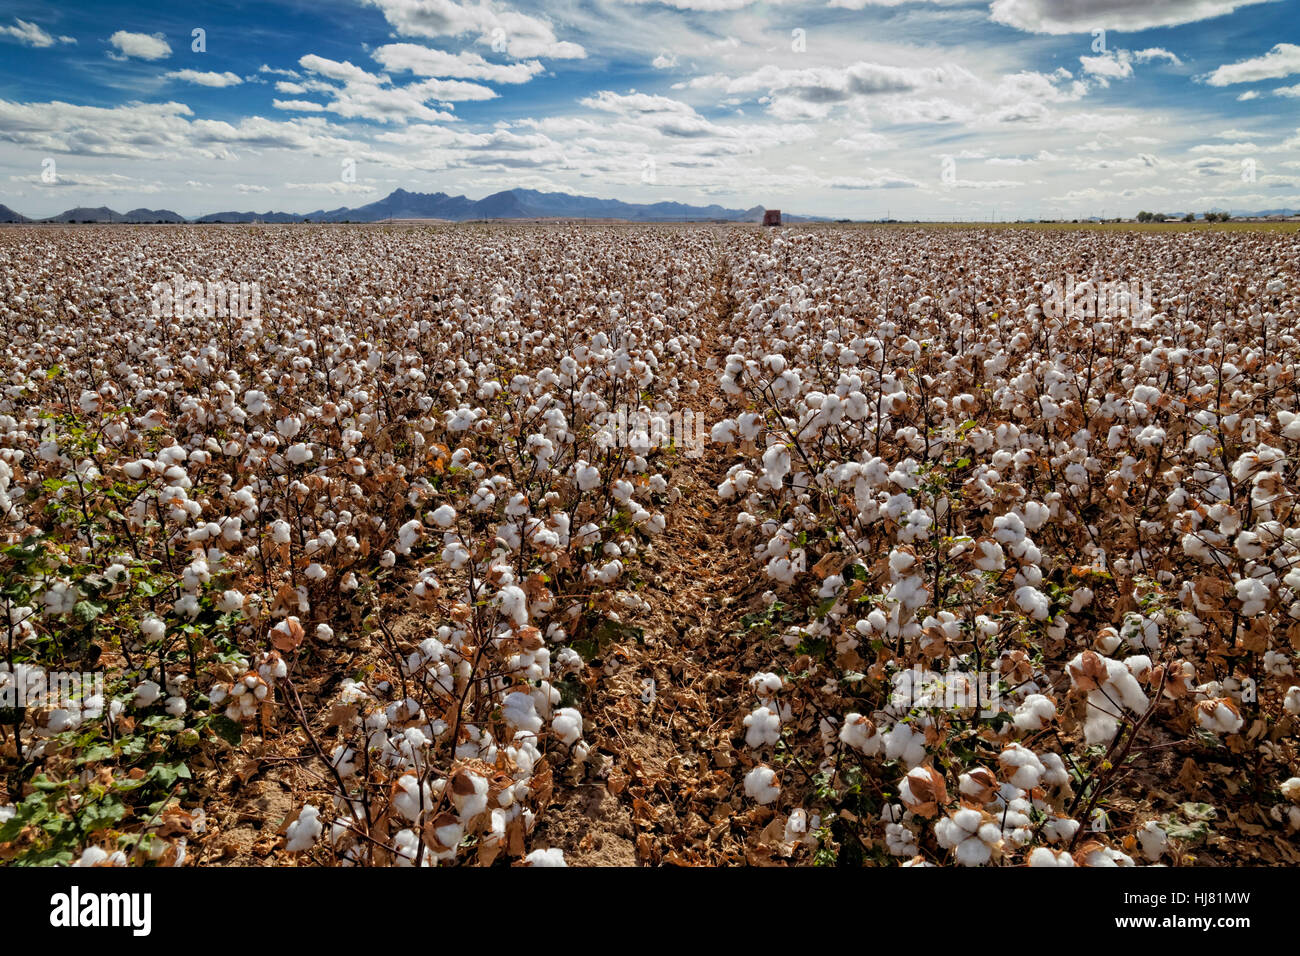 Cotton Harvest - Farming - Marana, Arizona - Stock Image